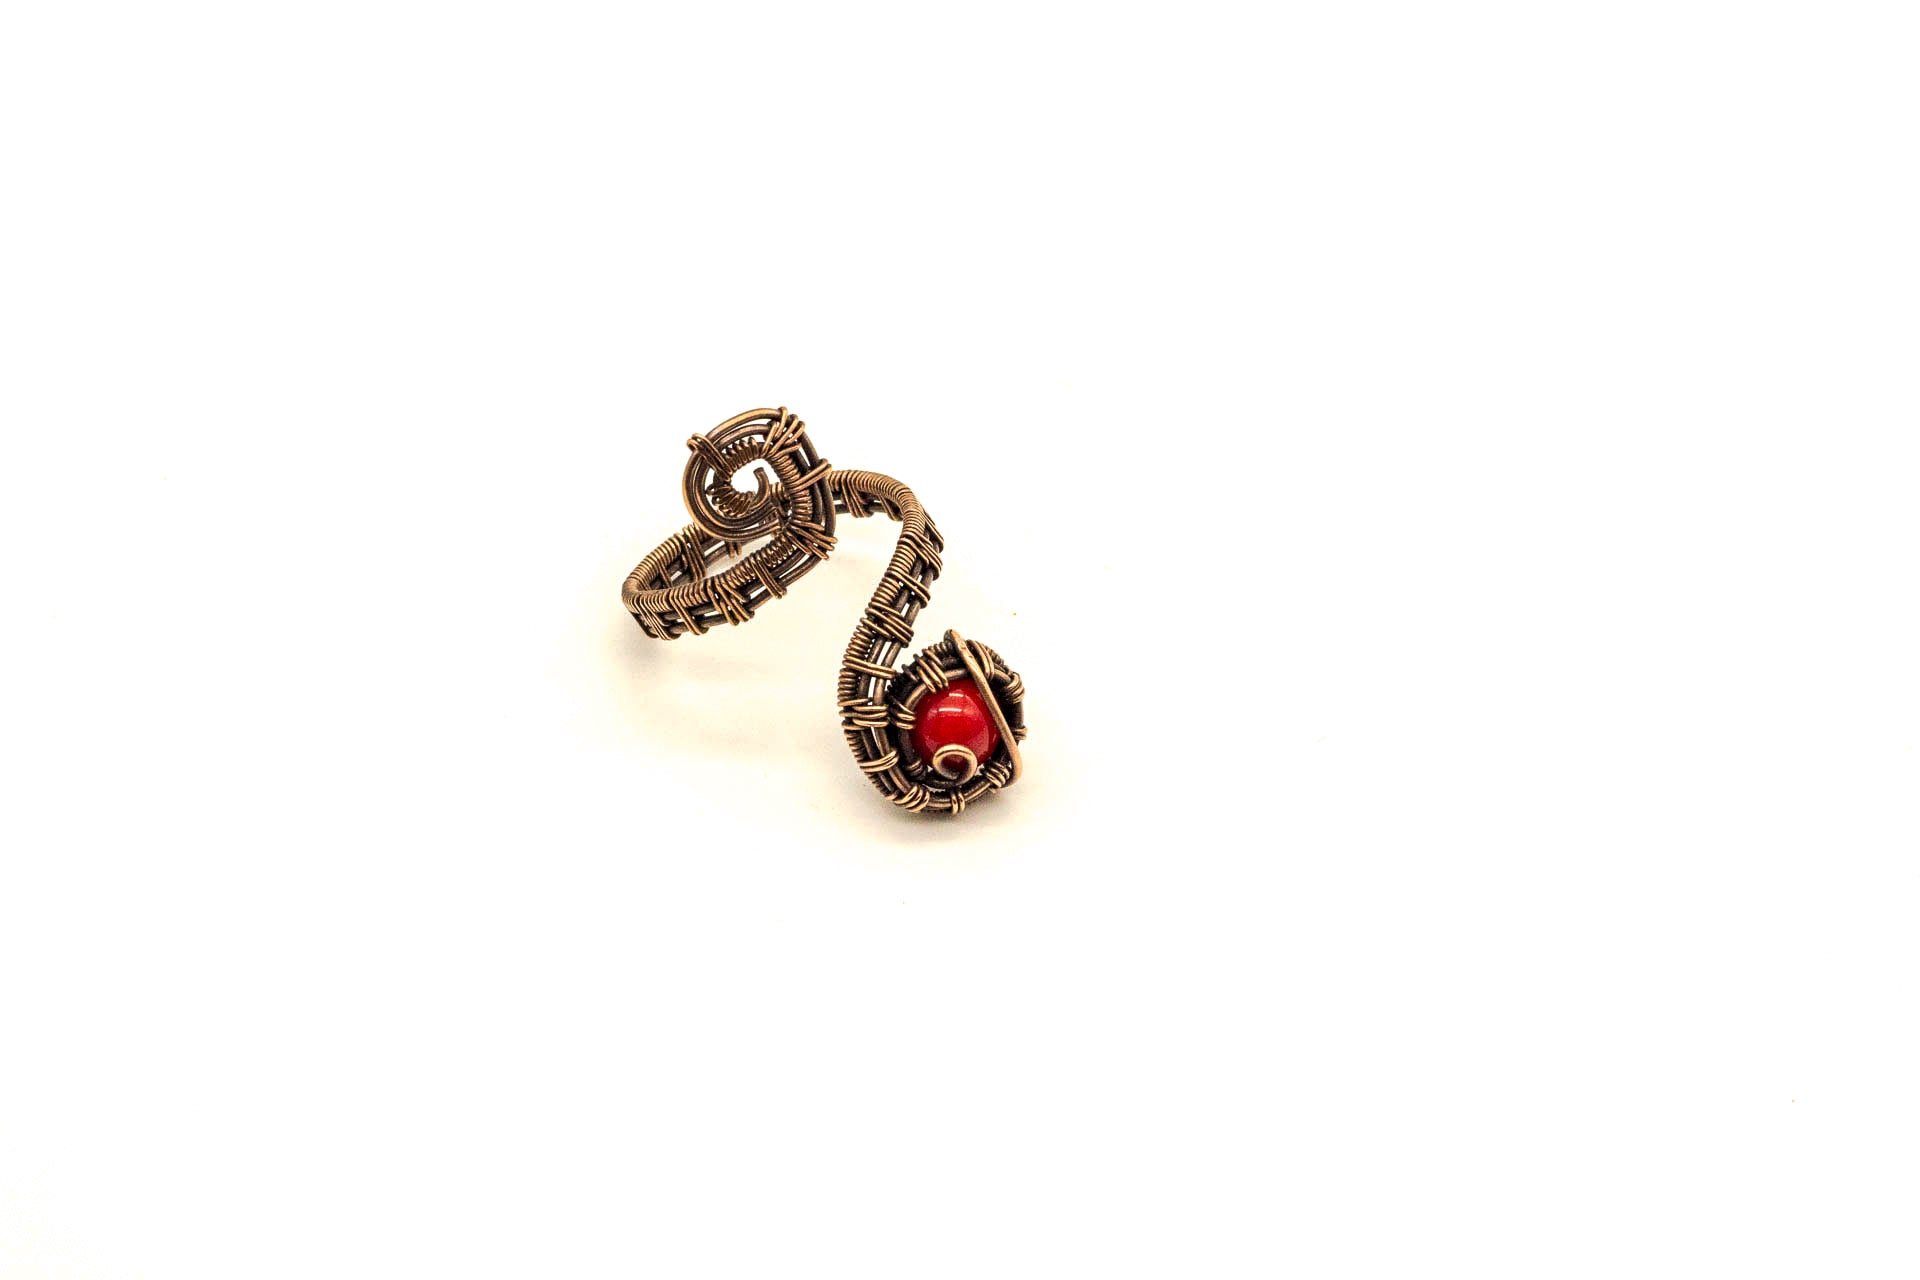 bright-red-fused-glass-copper-adjustable-ring-nymph-in-the-woods-jewelry